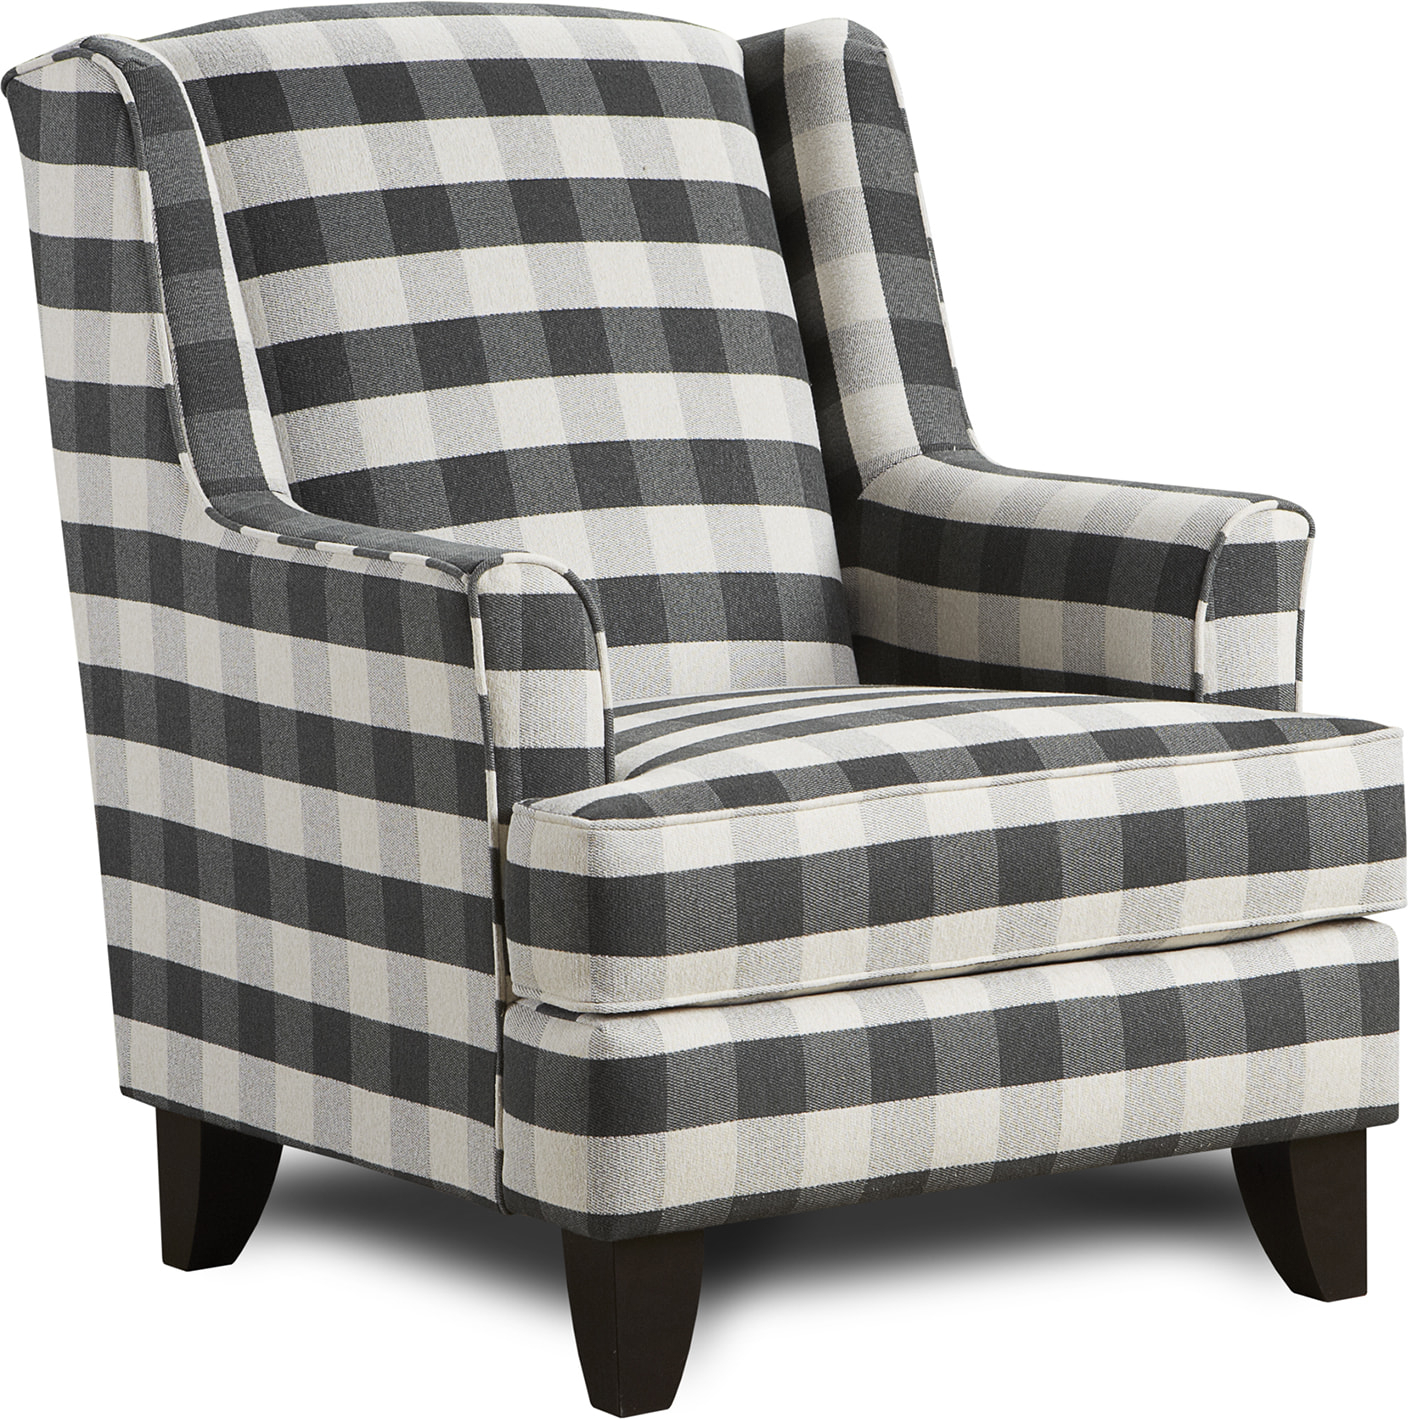 Nestor Chair For Nestor Wingback Chairs (View 2 of 15)